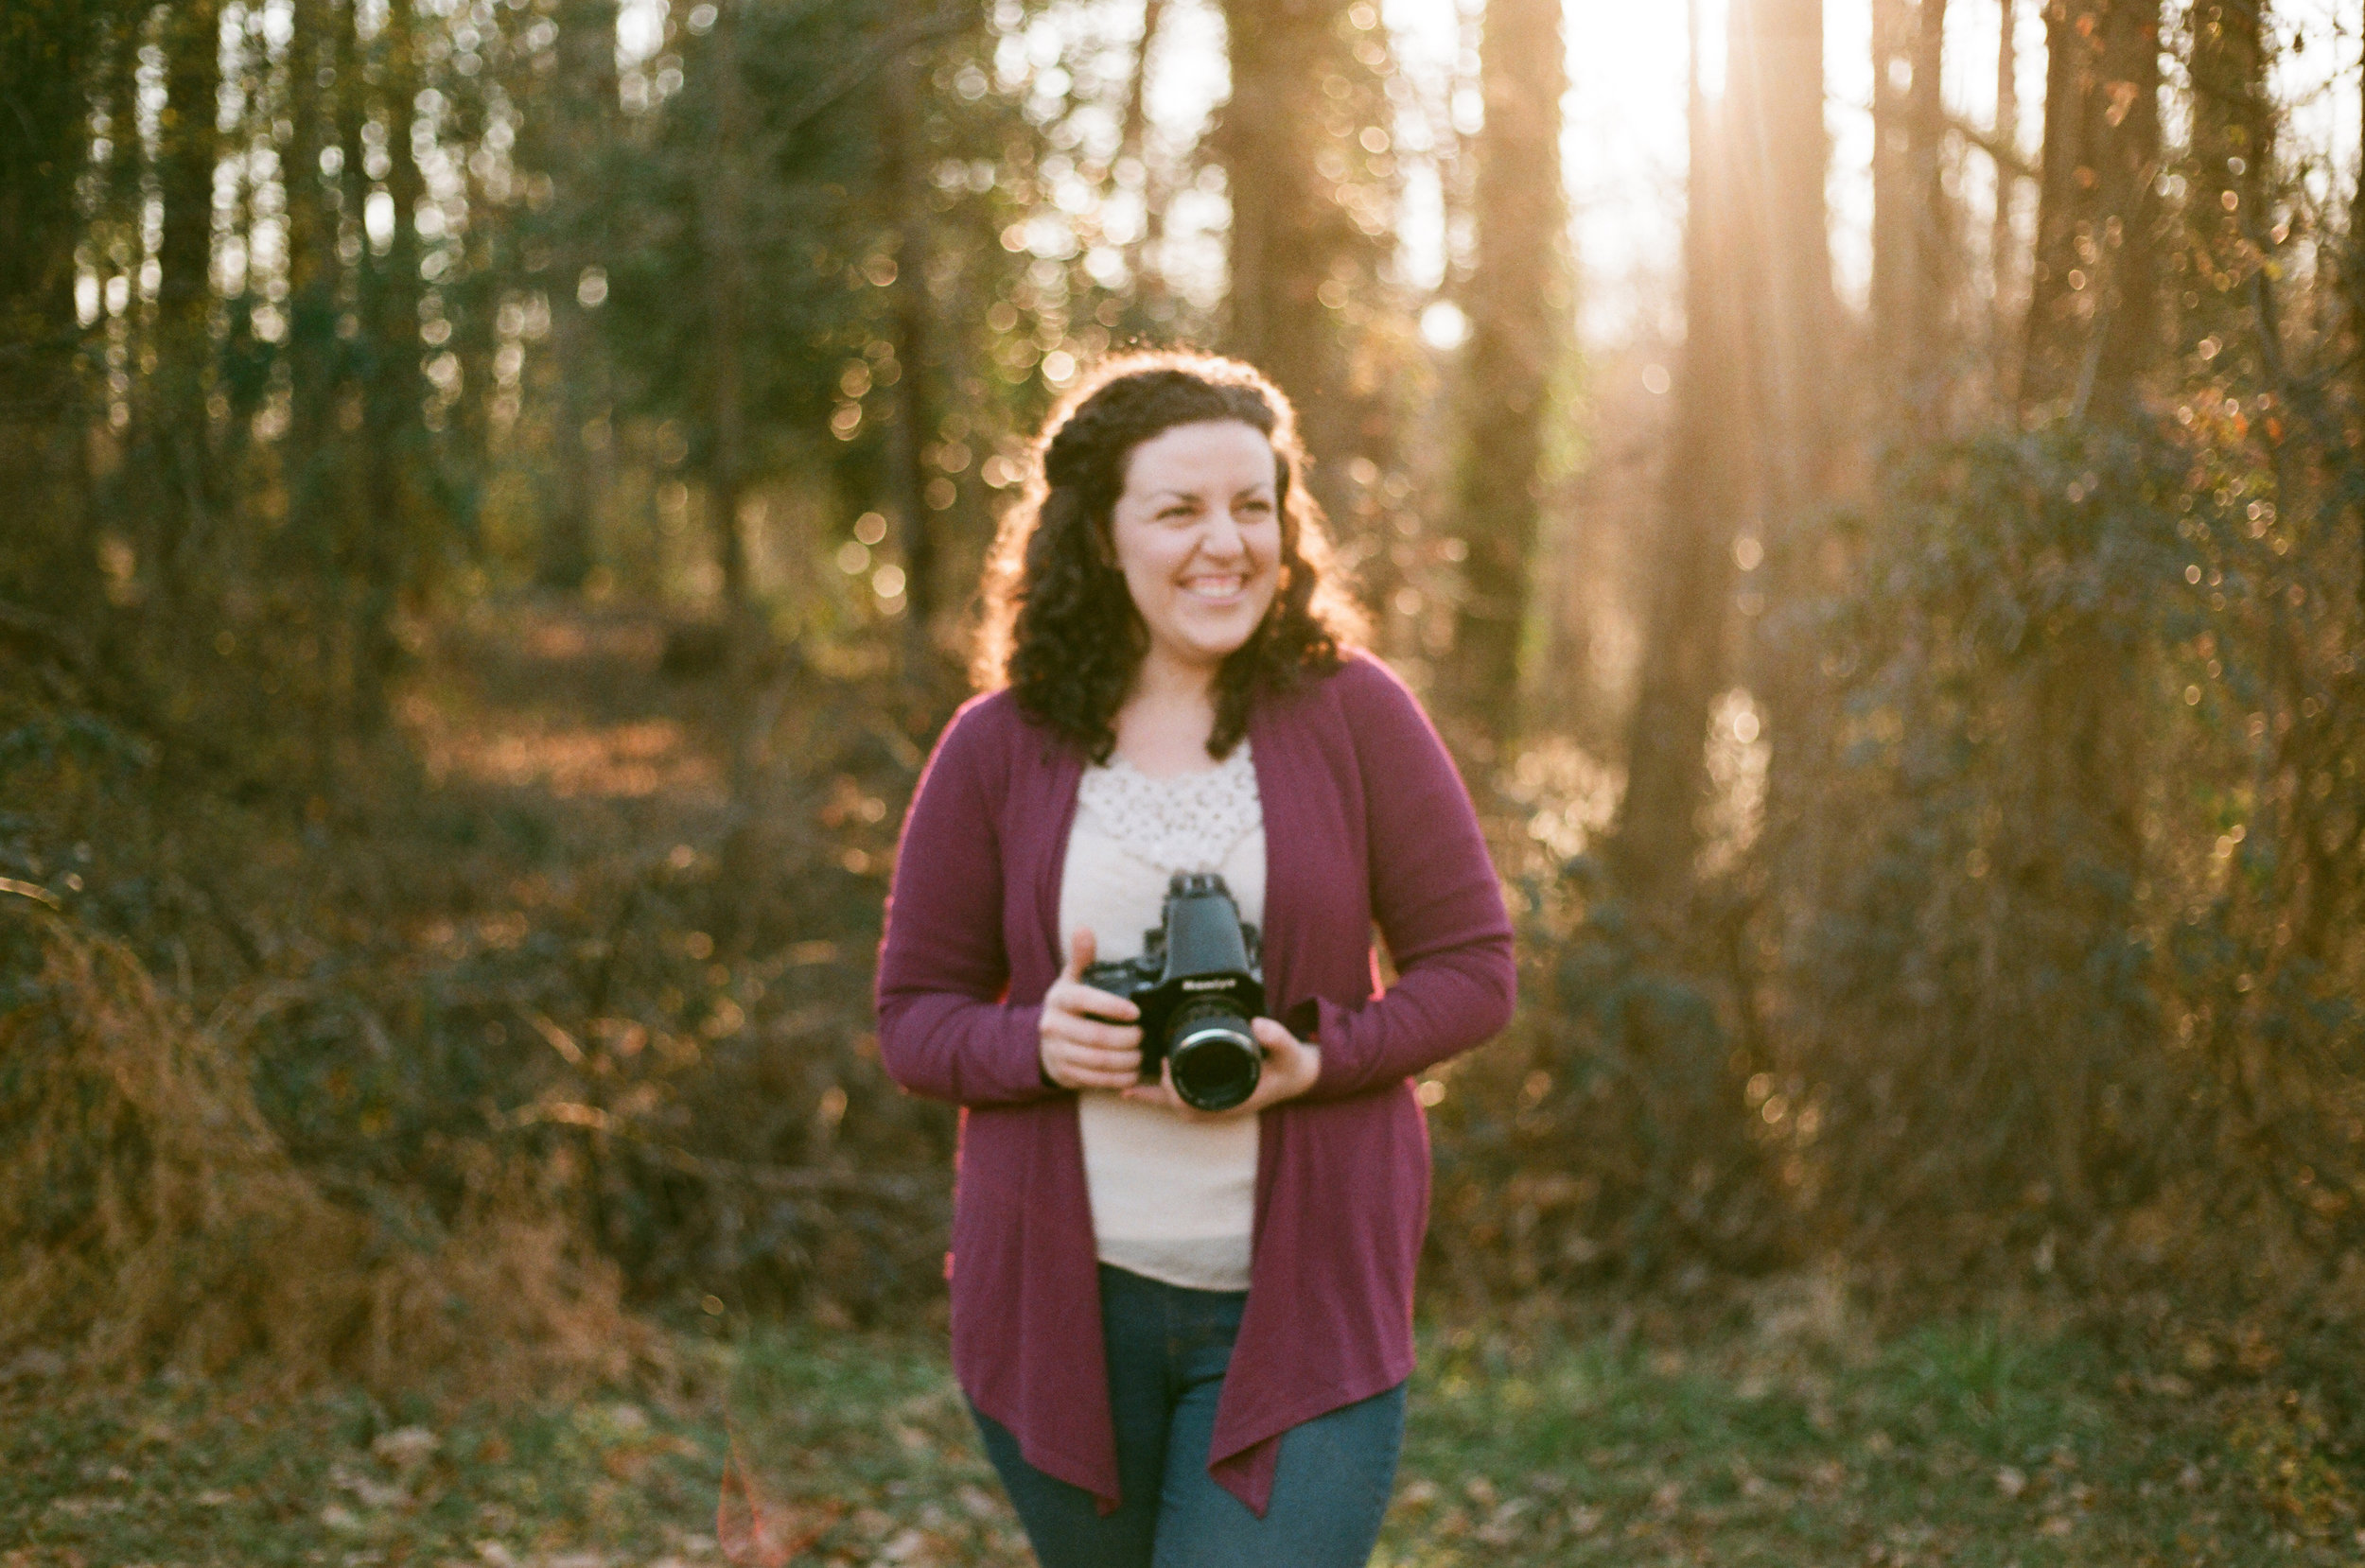 This one is out of focus, but I still love it. And Hannah's Mamiya.